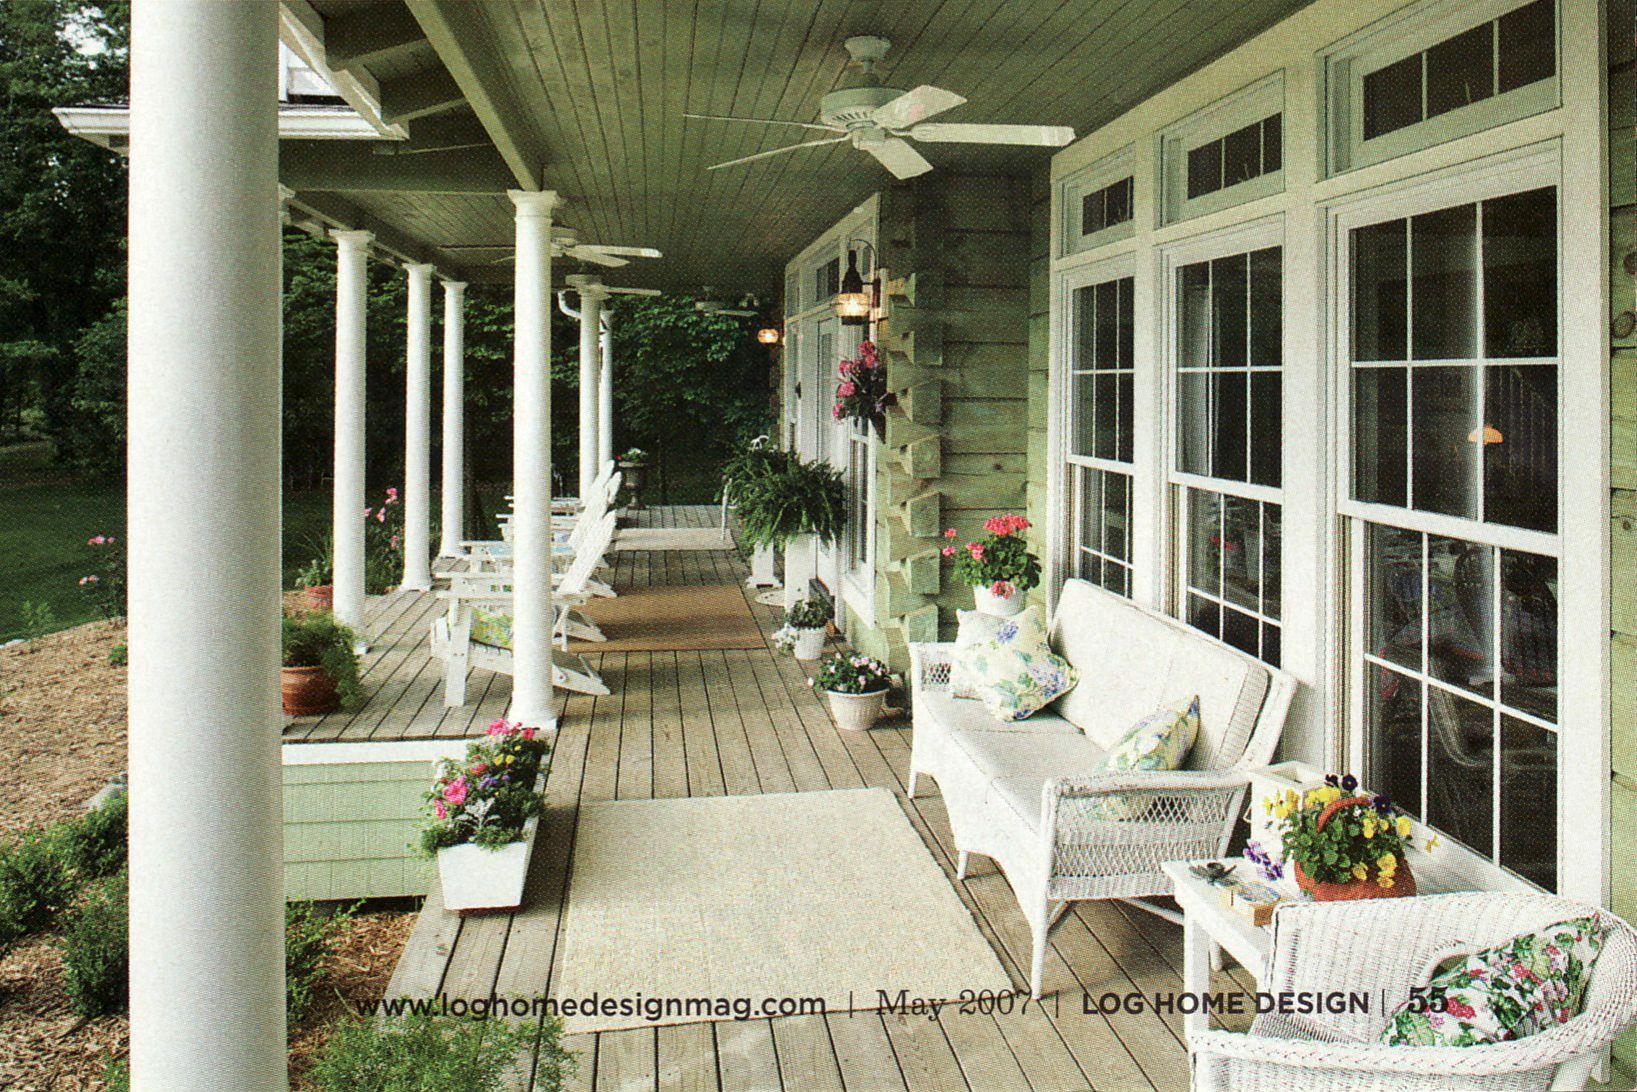 Ideas For Exterior House Colors | Design magazine, Homesteads and Logs